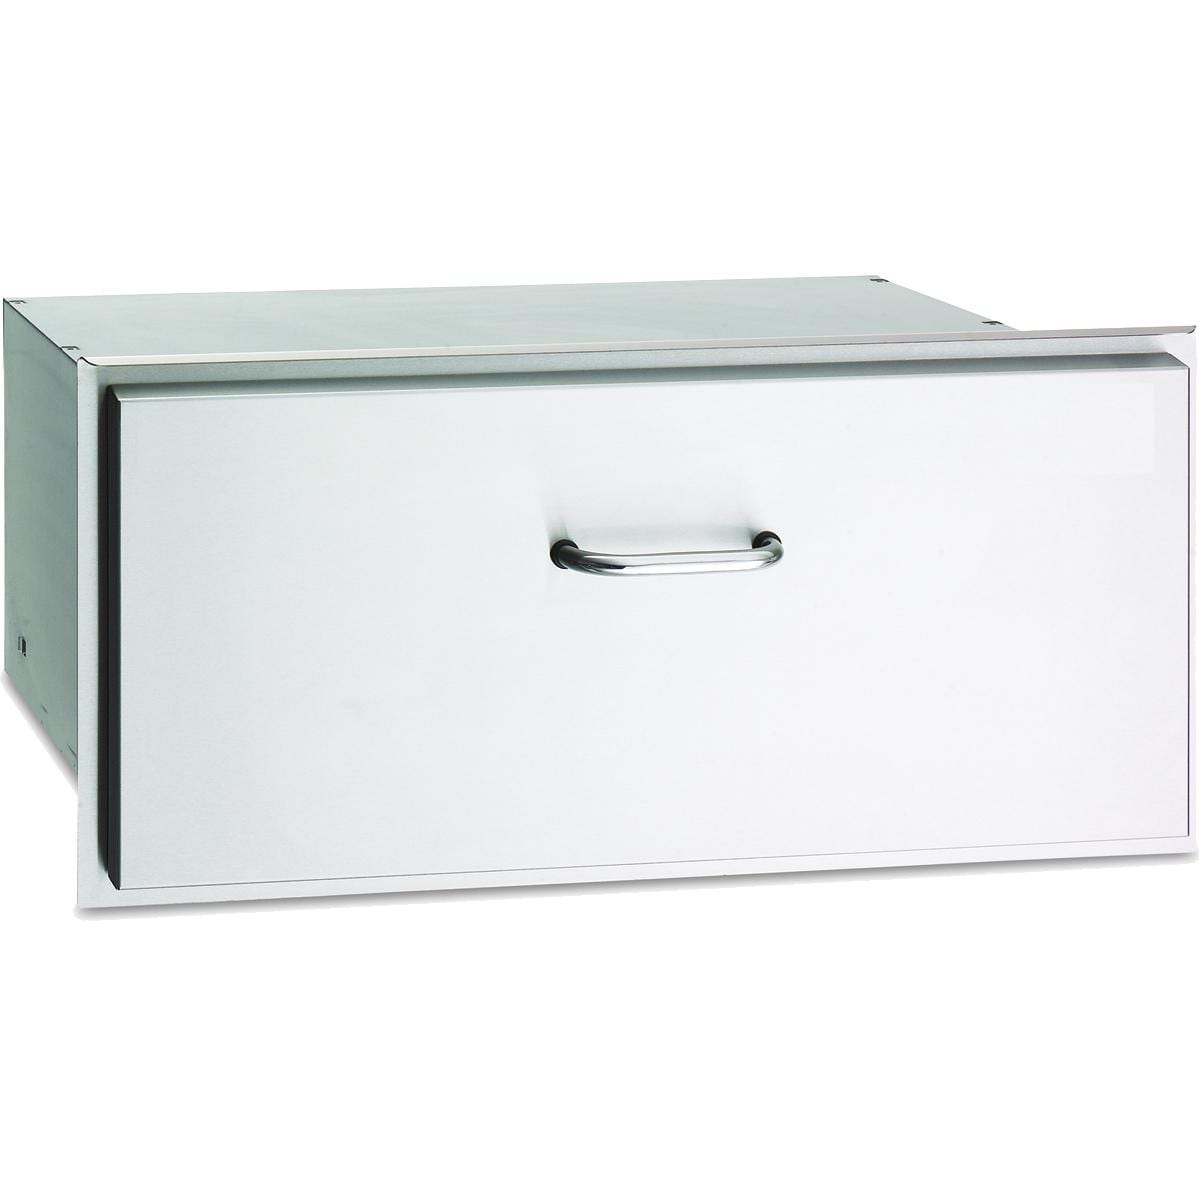 American Outdoor Grill 30-Inch Masonry Drawer